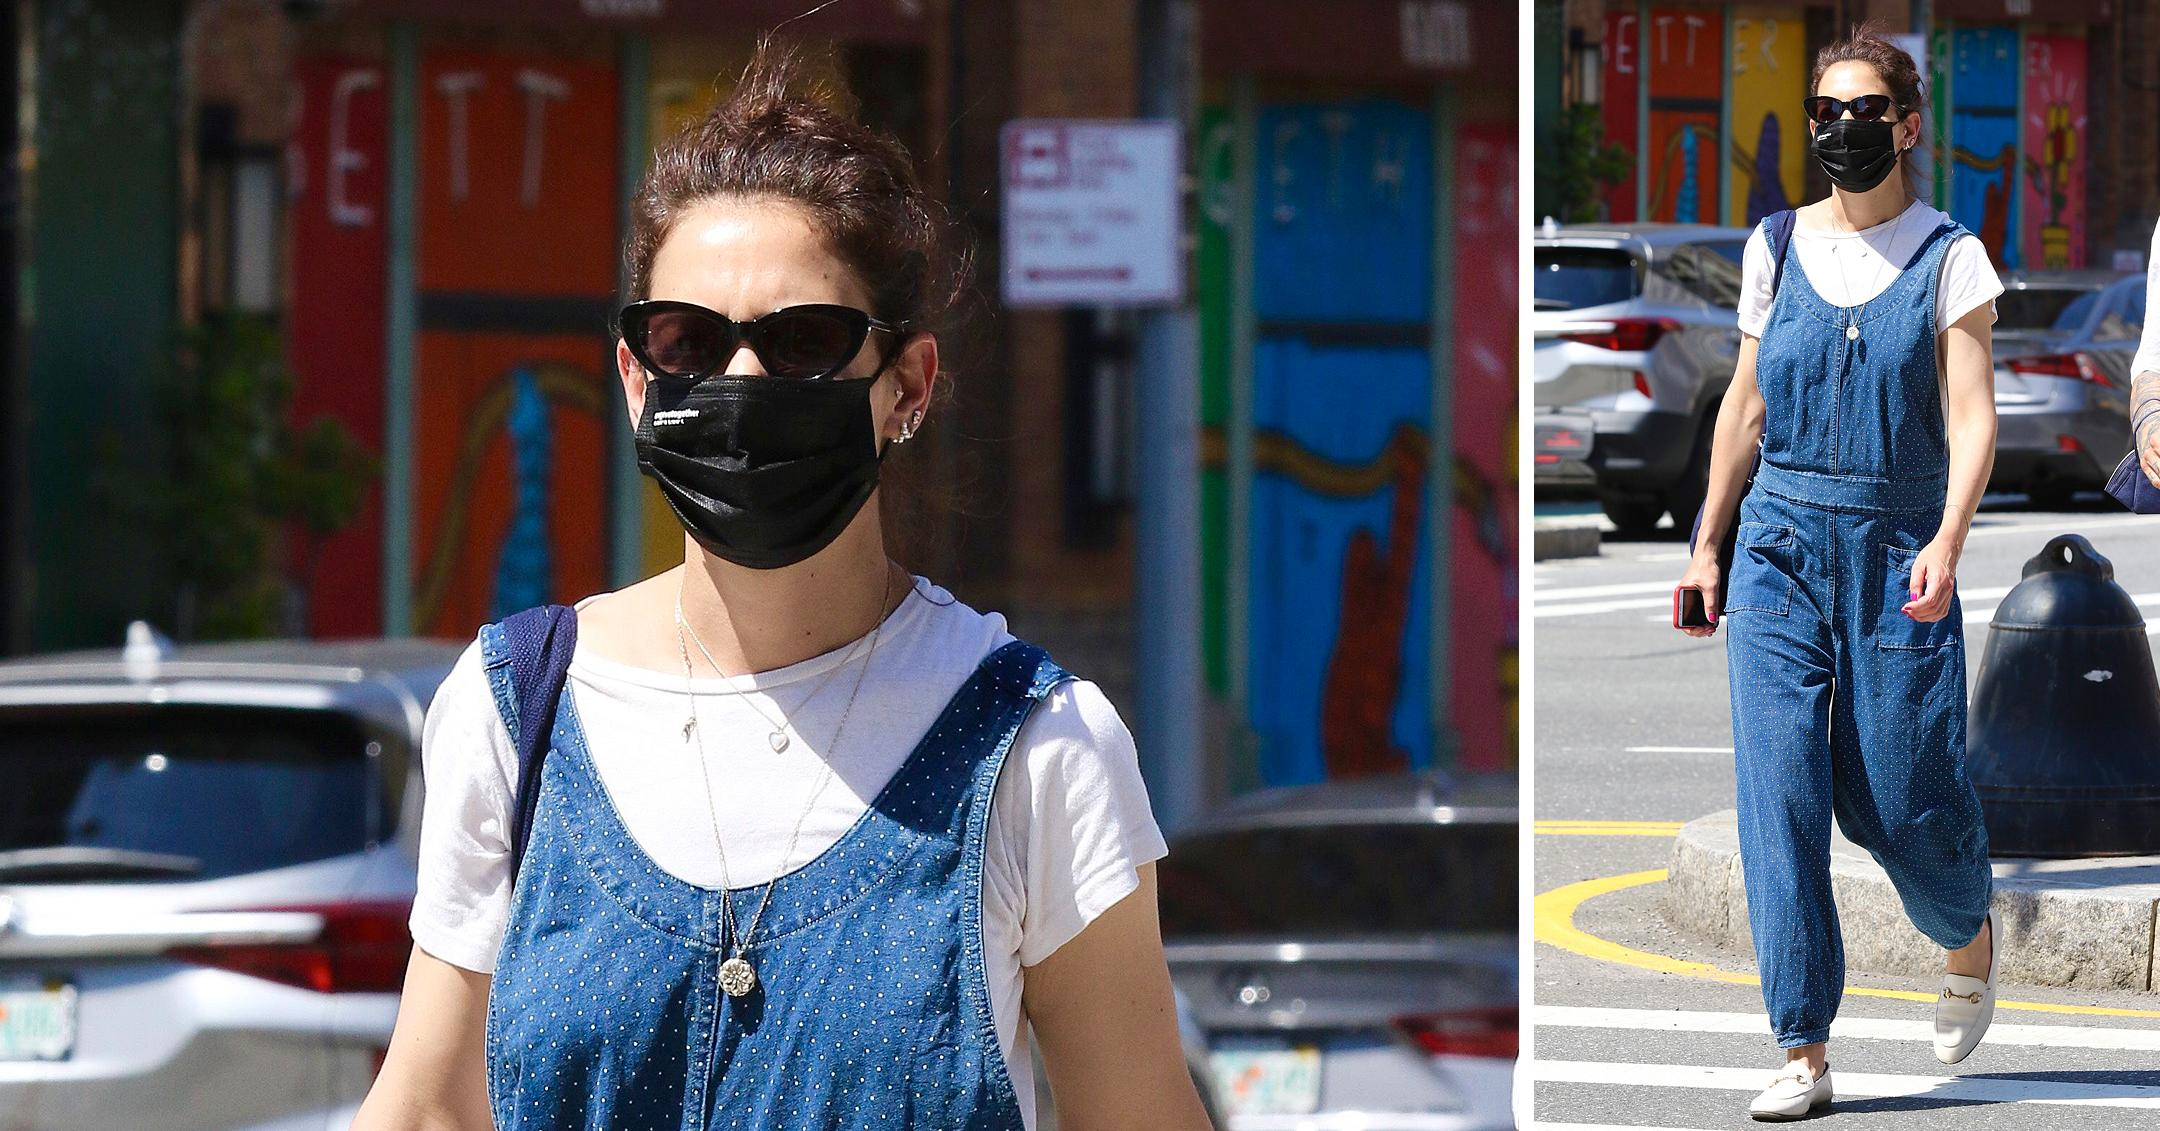 katie holmes steps out in blue overalls in  degree weather in nyc